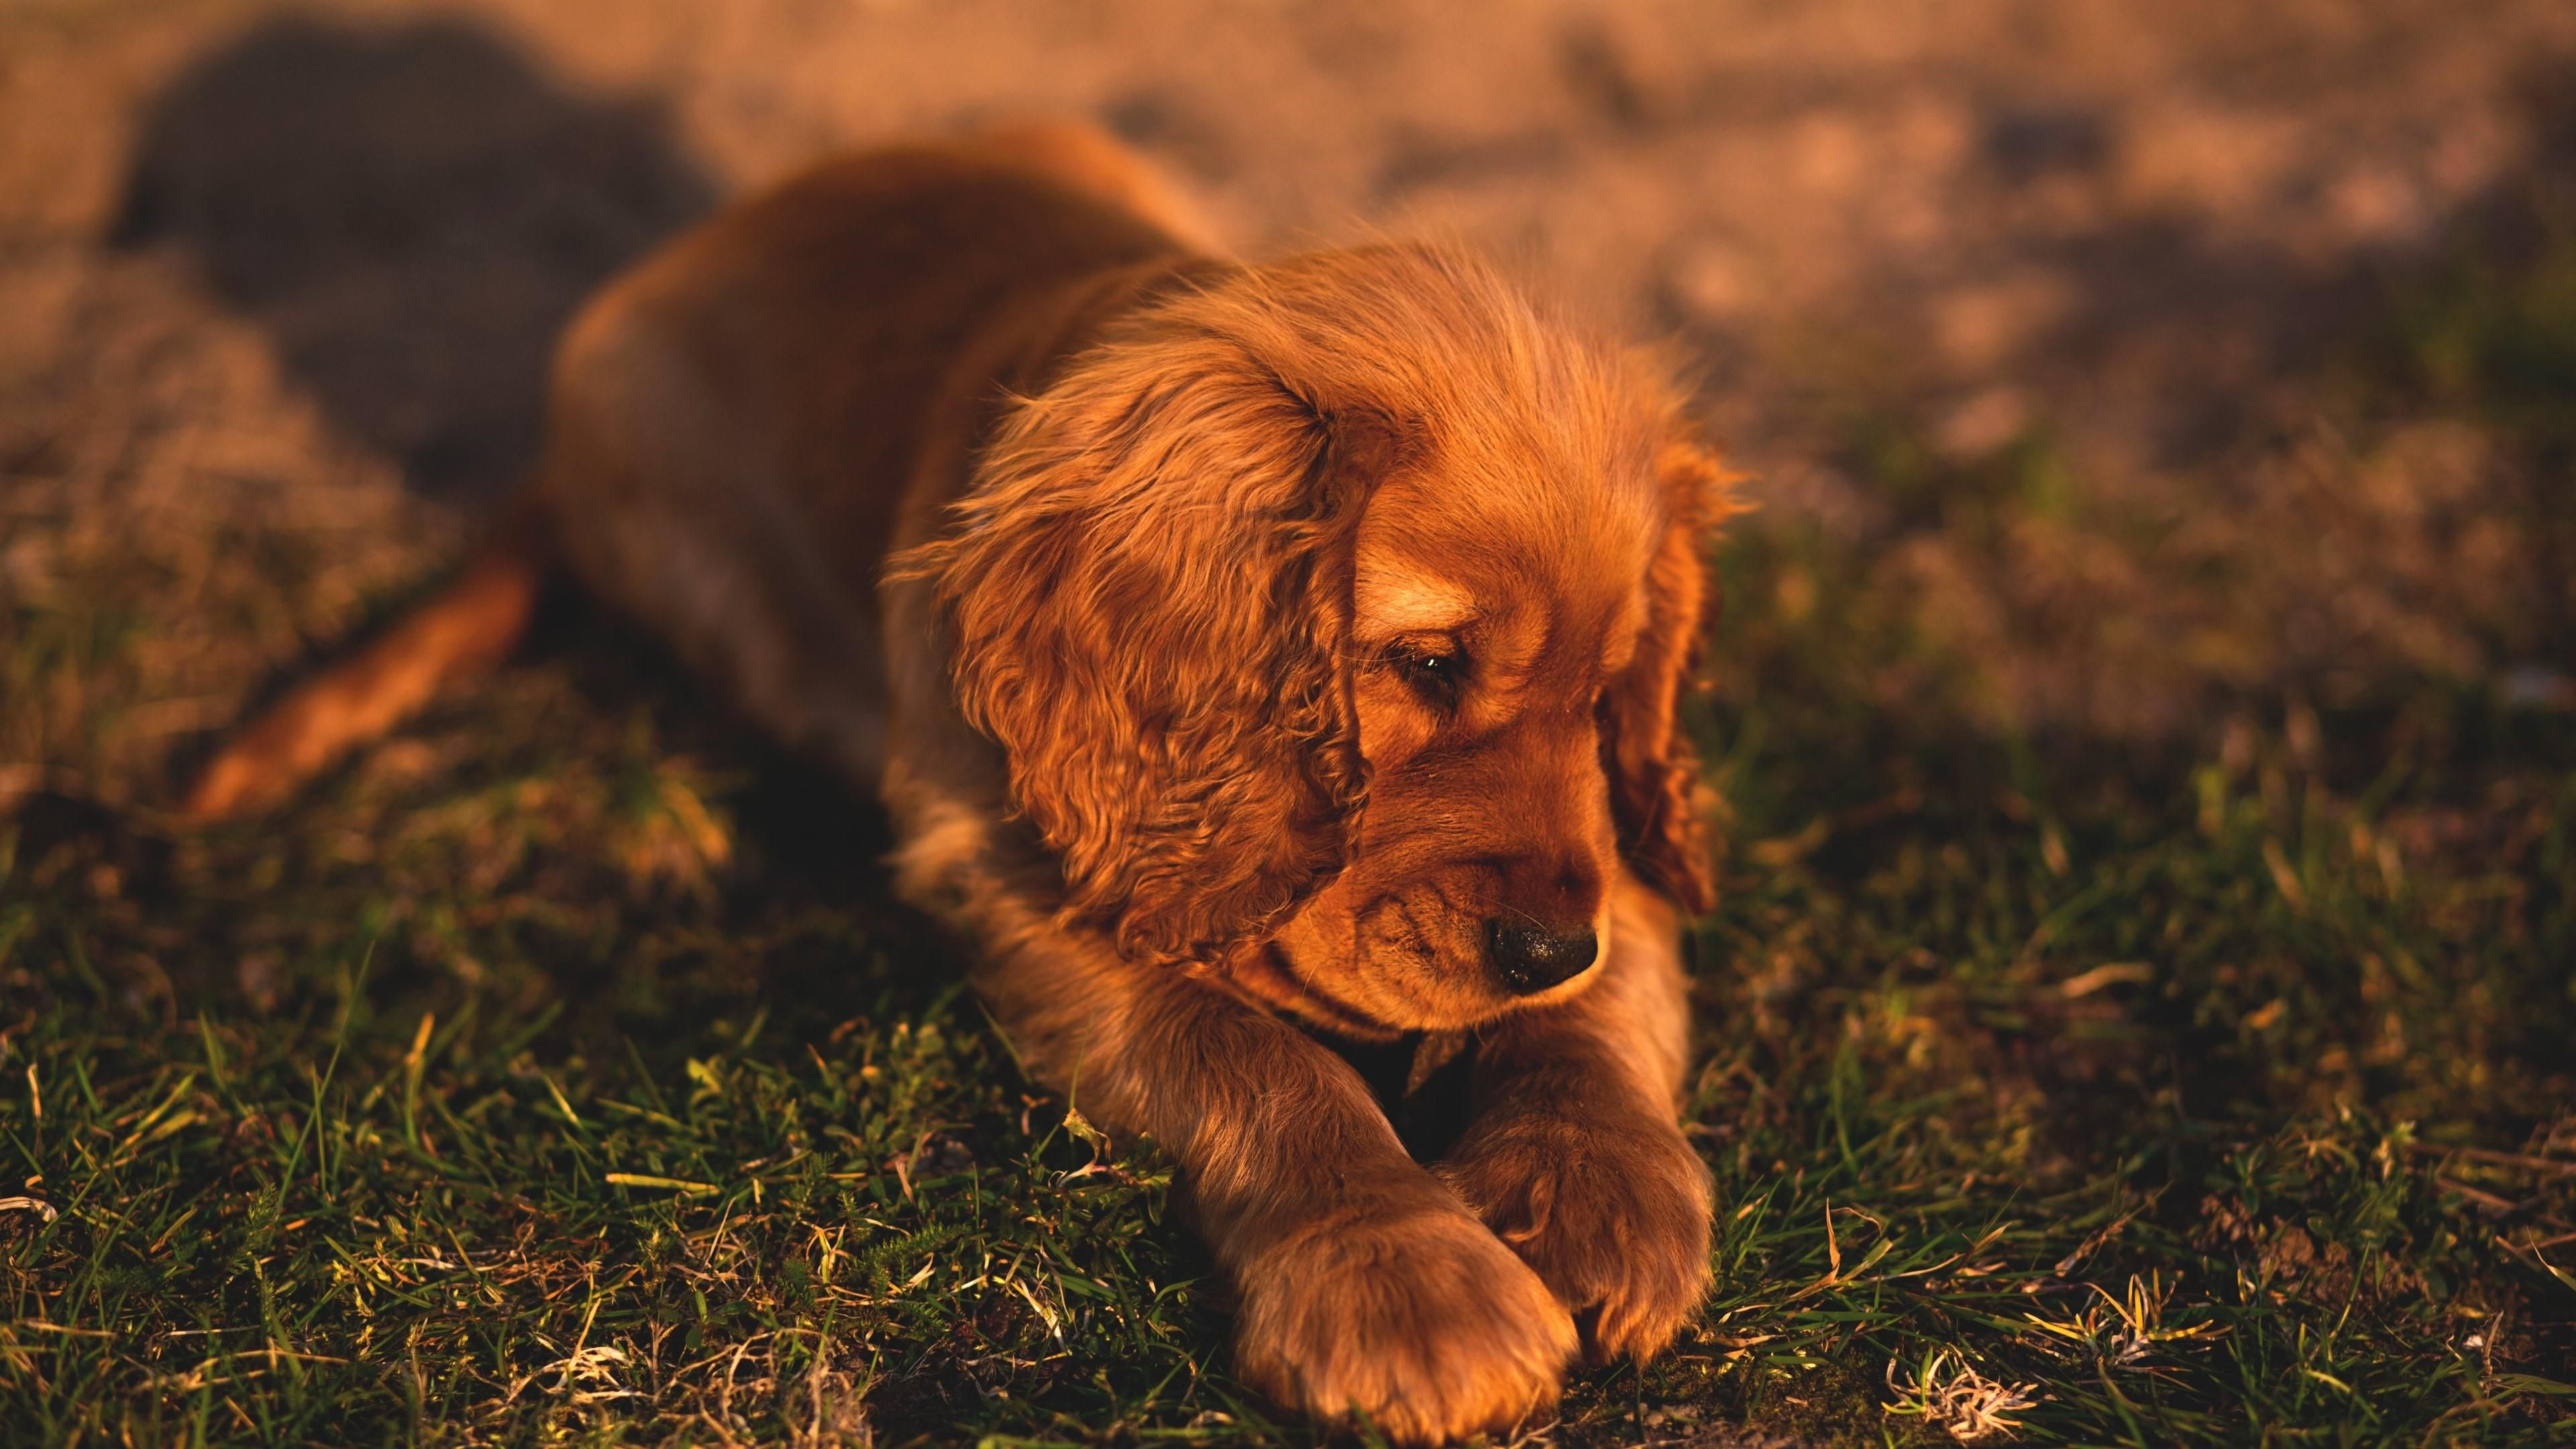 Spaniel Dog Wallpapers Photo Cocker Spaniel Puppies Dog Breeds Pet Dogs Puppies